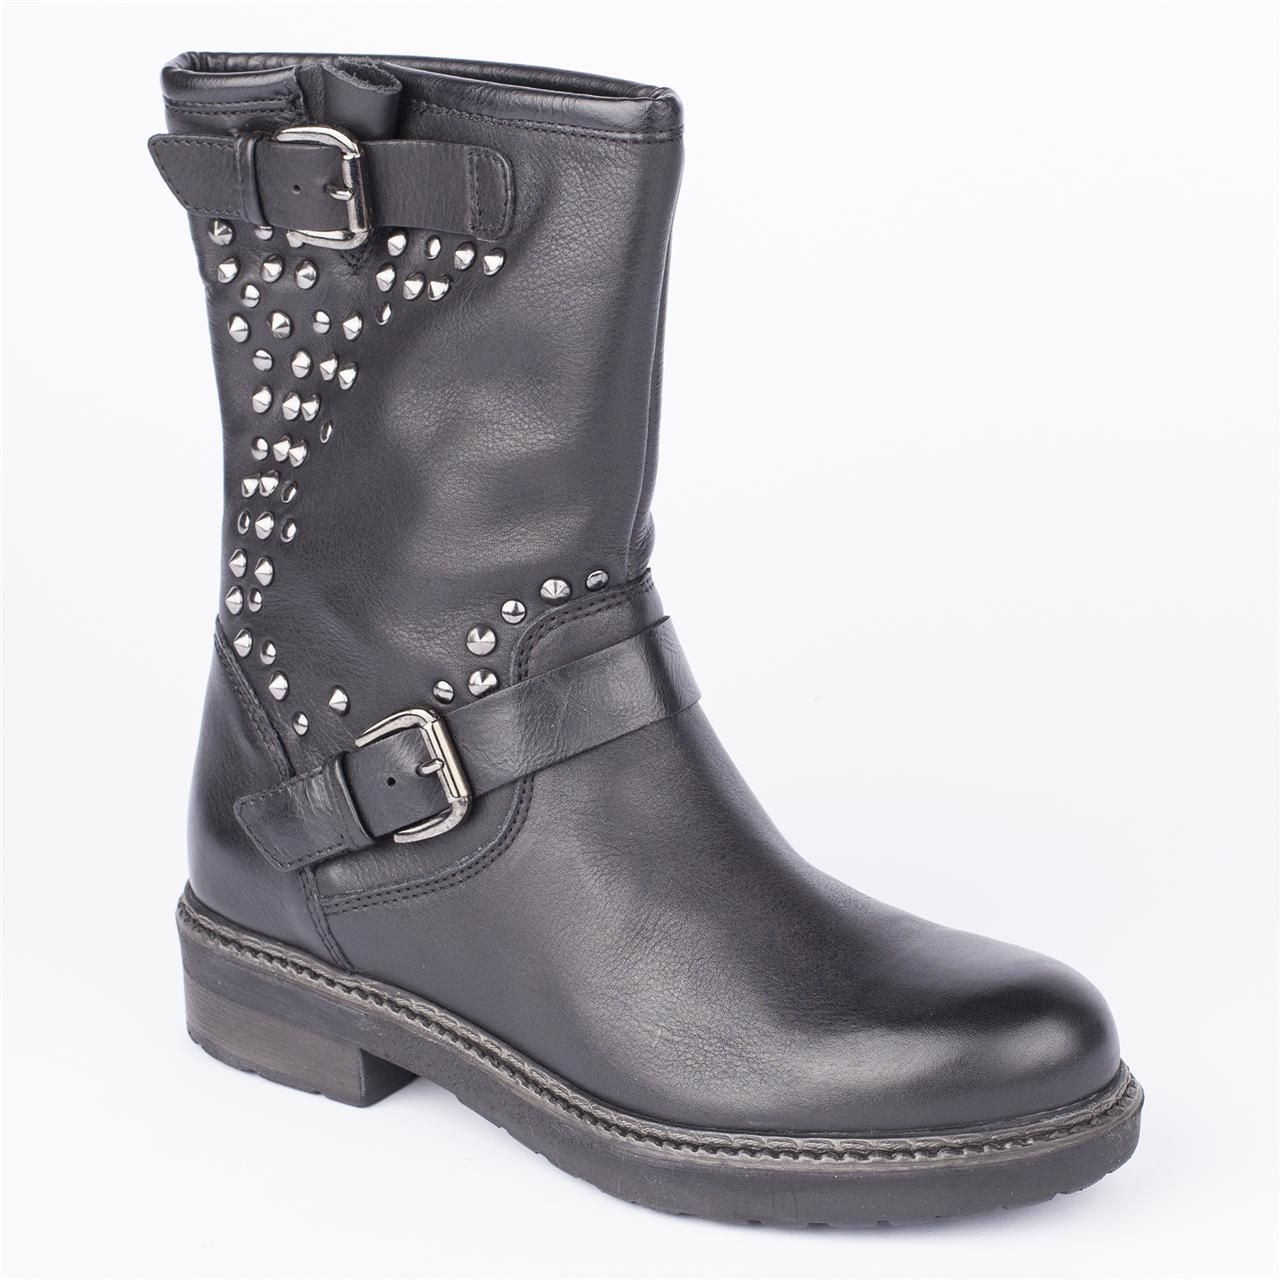 Ladies Boots, Leather, Suede & More from Jones Bootmaker